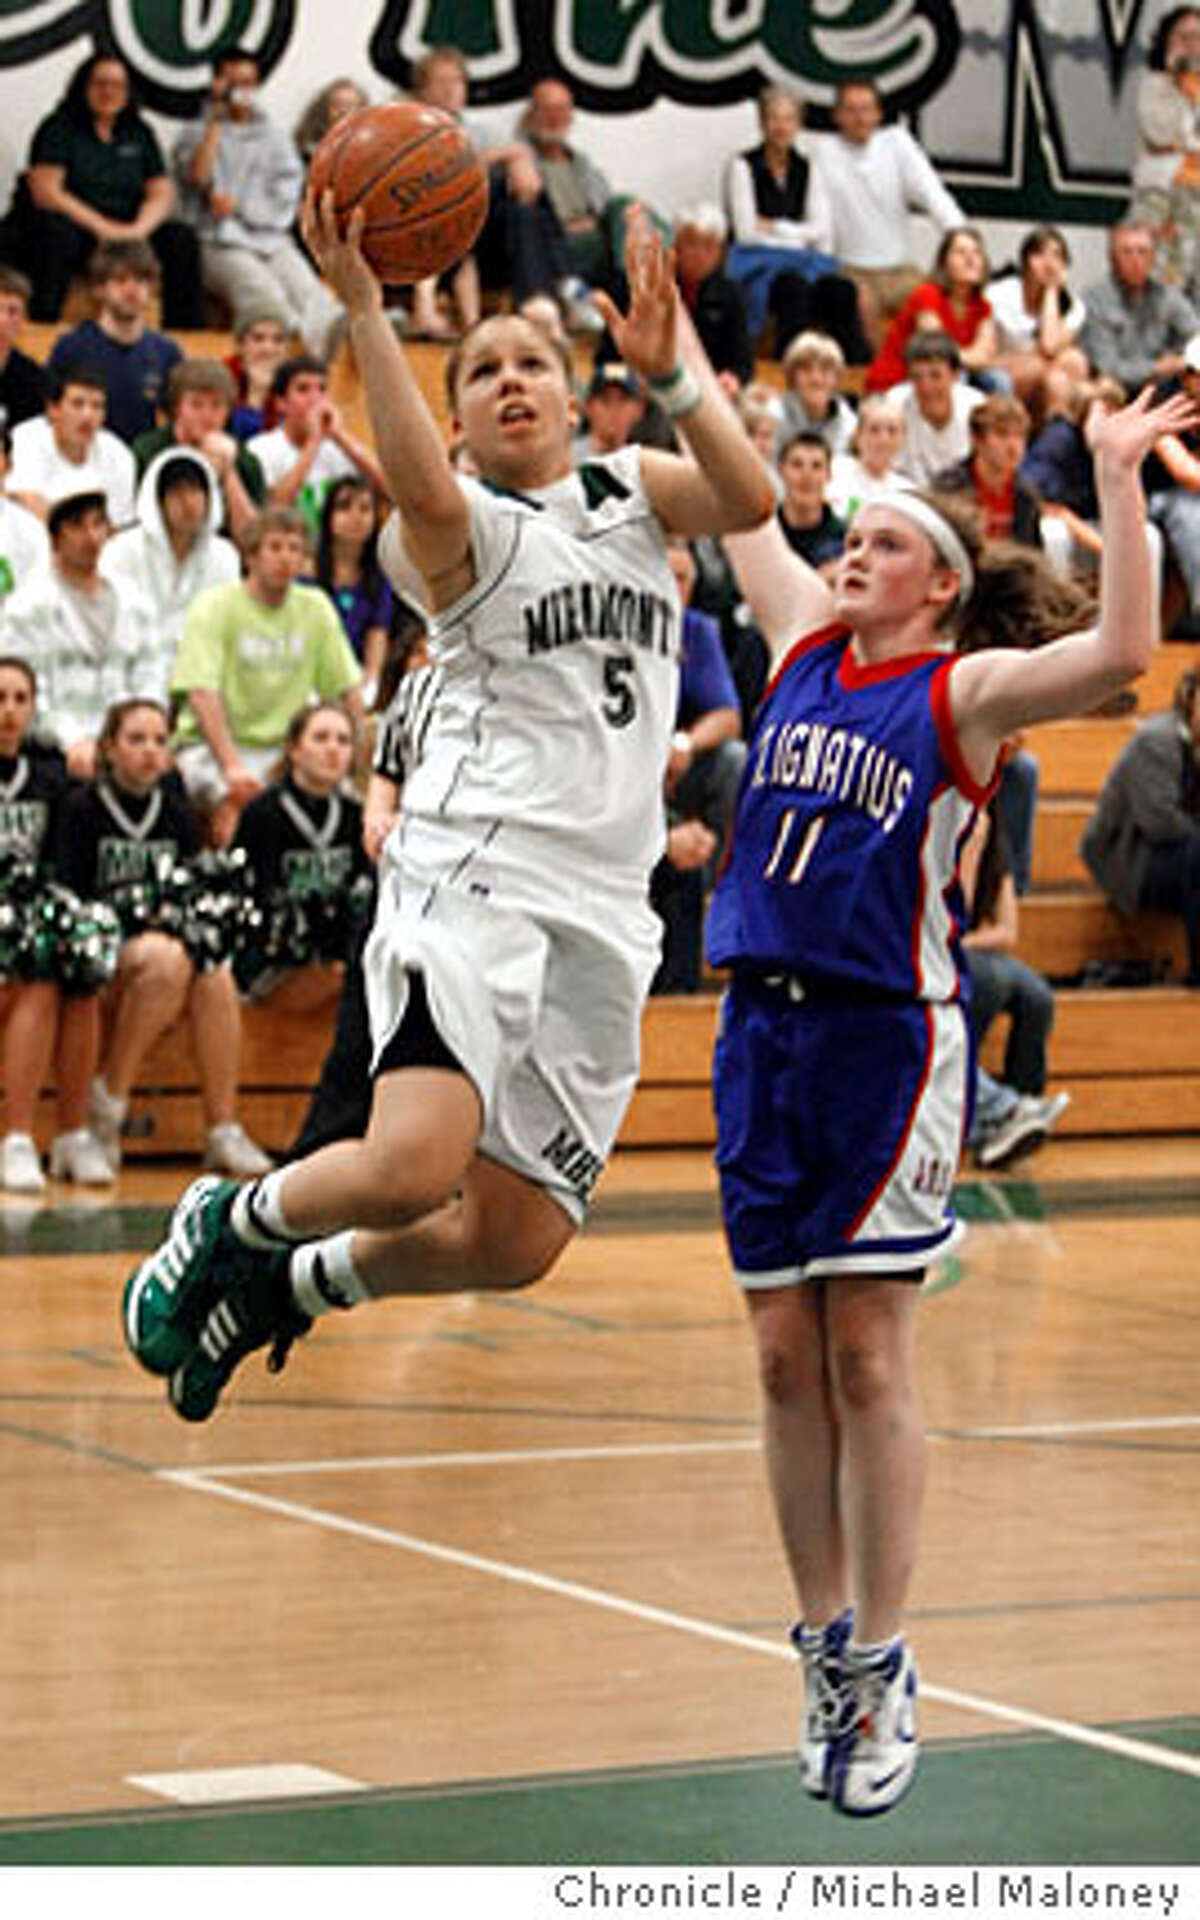 Miramonte's Katie Evans (5) goes up for a basket in the 4th period. St. Ignatius' Rachel Hatch (11) defending. Miramonte high school in Orinda, Calif. hosts San Francisco's St. Ignatius high school in a 1st-round NorCal girl's playoff basketball game Tuesday night, March 4, 2008. Miramonte won 70-54. Photo by Michael Maloney / San Francisco Chronicle Ran on: 03-05-2008 St. Ignatius Caroline Barrack (front) and Miramontes Katie Batlin vie for a loose ball. Ran on: 03-05-2008 St. Ignatius Caroline Barrack (front) and Miramontes Katie Batlin vie for a loose ball.